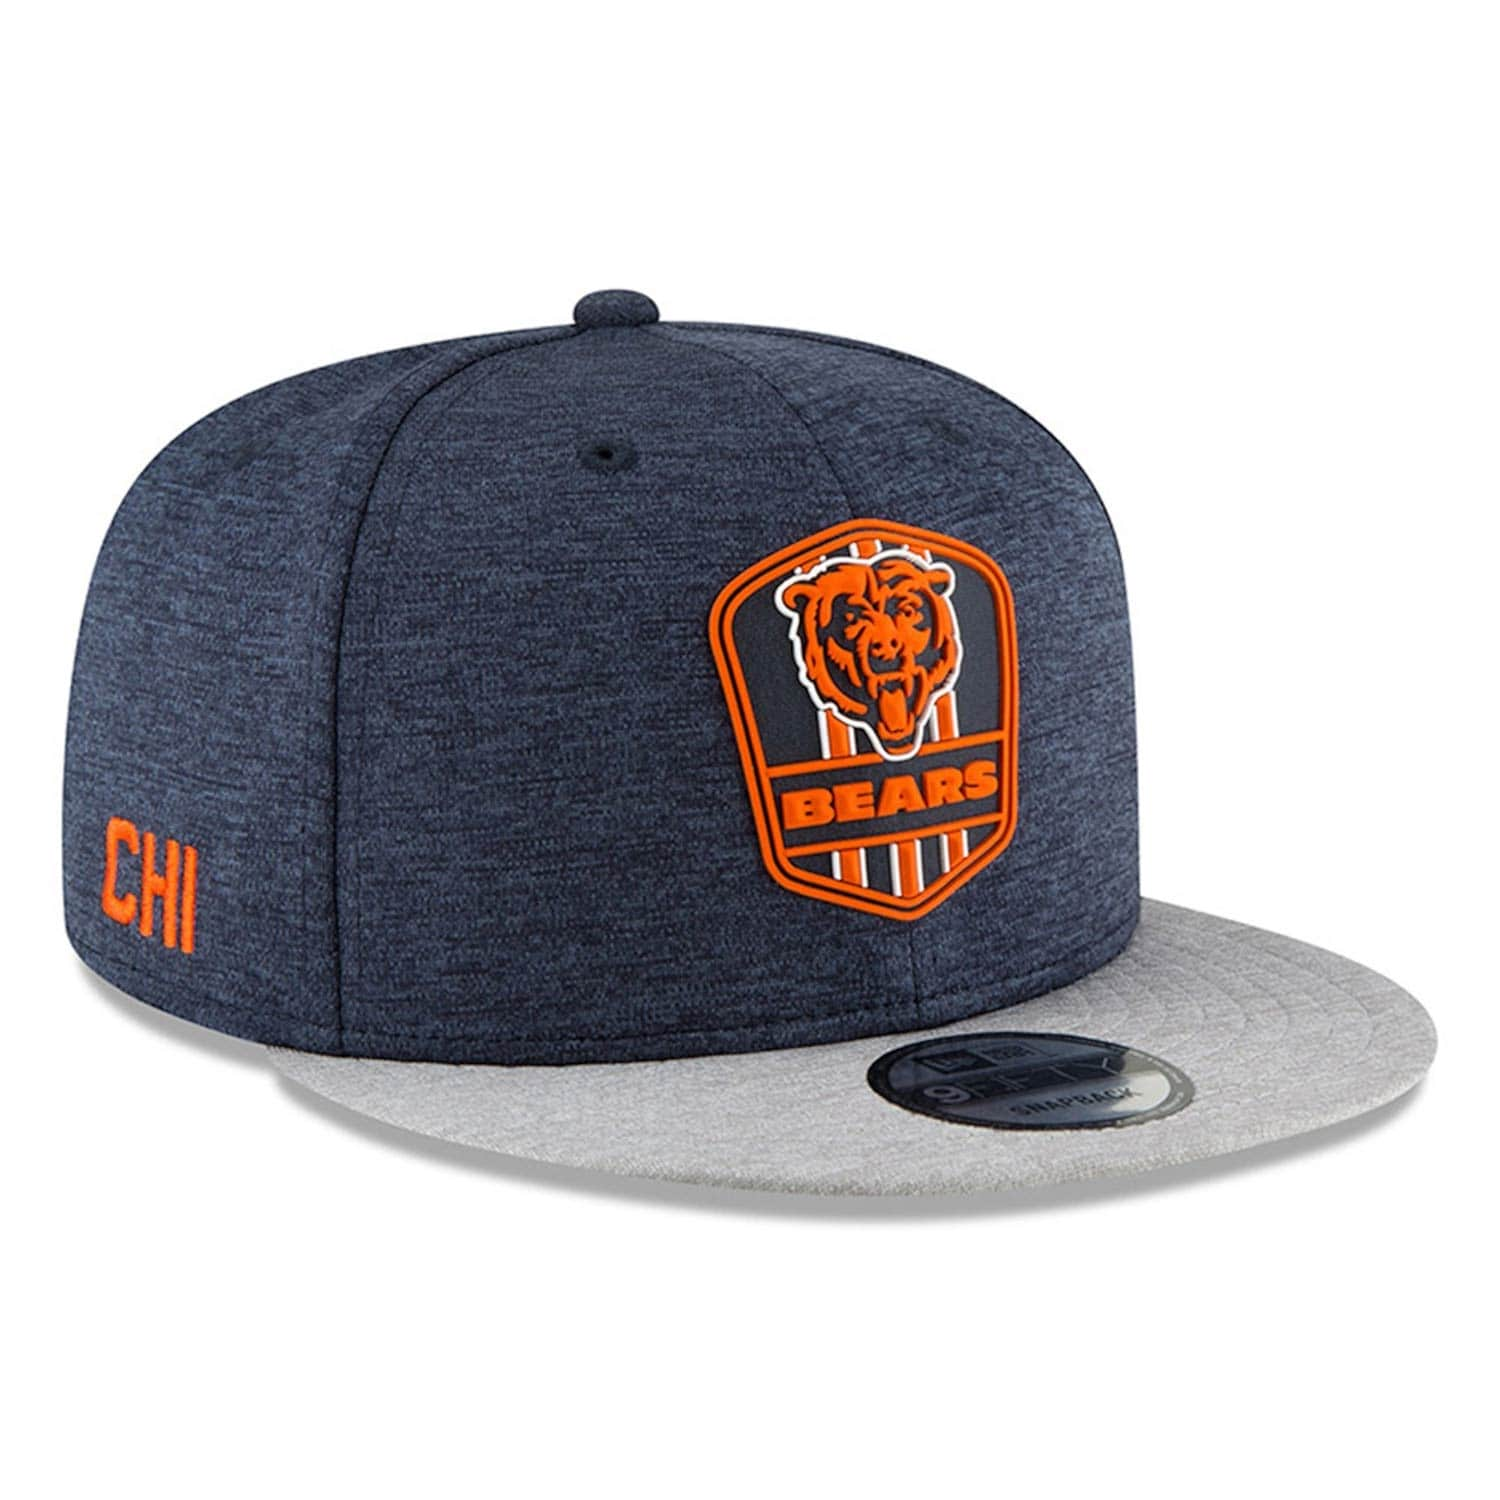 New Era Chicago Bears 2018 NFL Sideline 9FIFTY Snapback Cap Road ... 0191dd4c5dbe